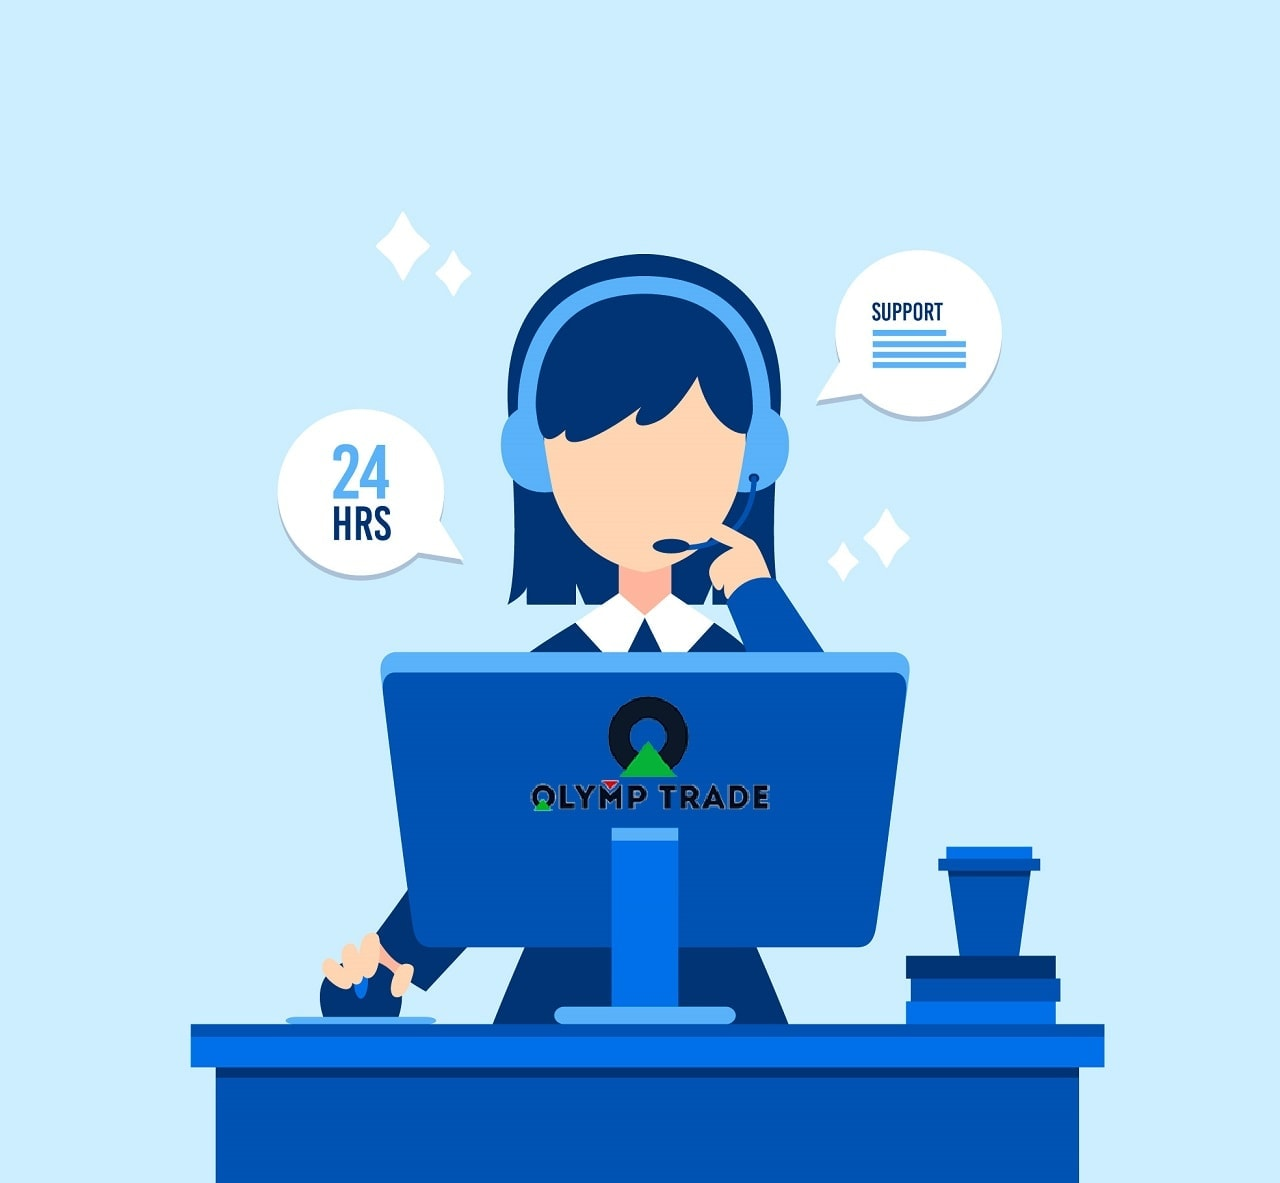 Contact the platform support to solve complaints